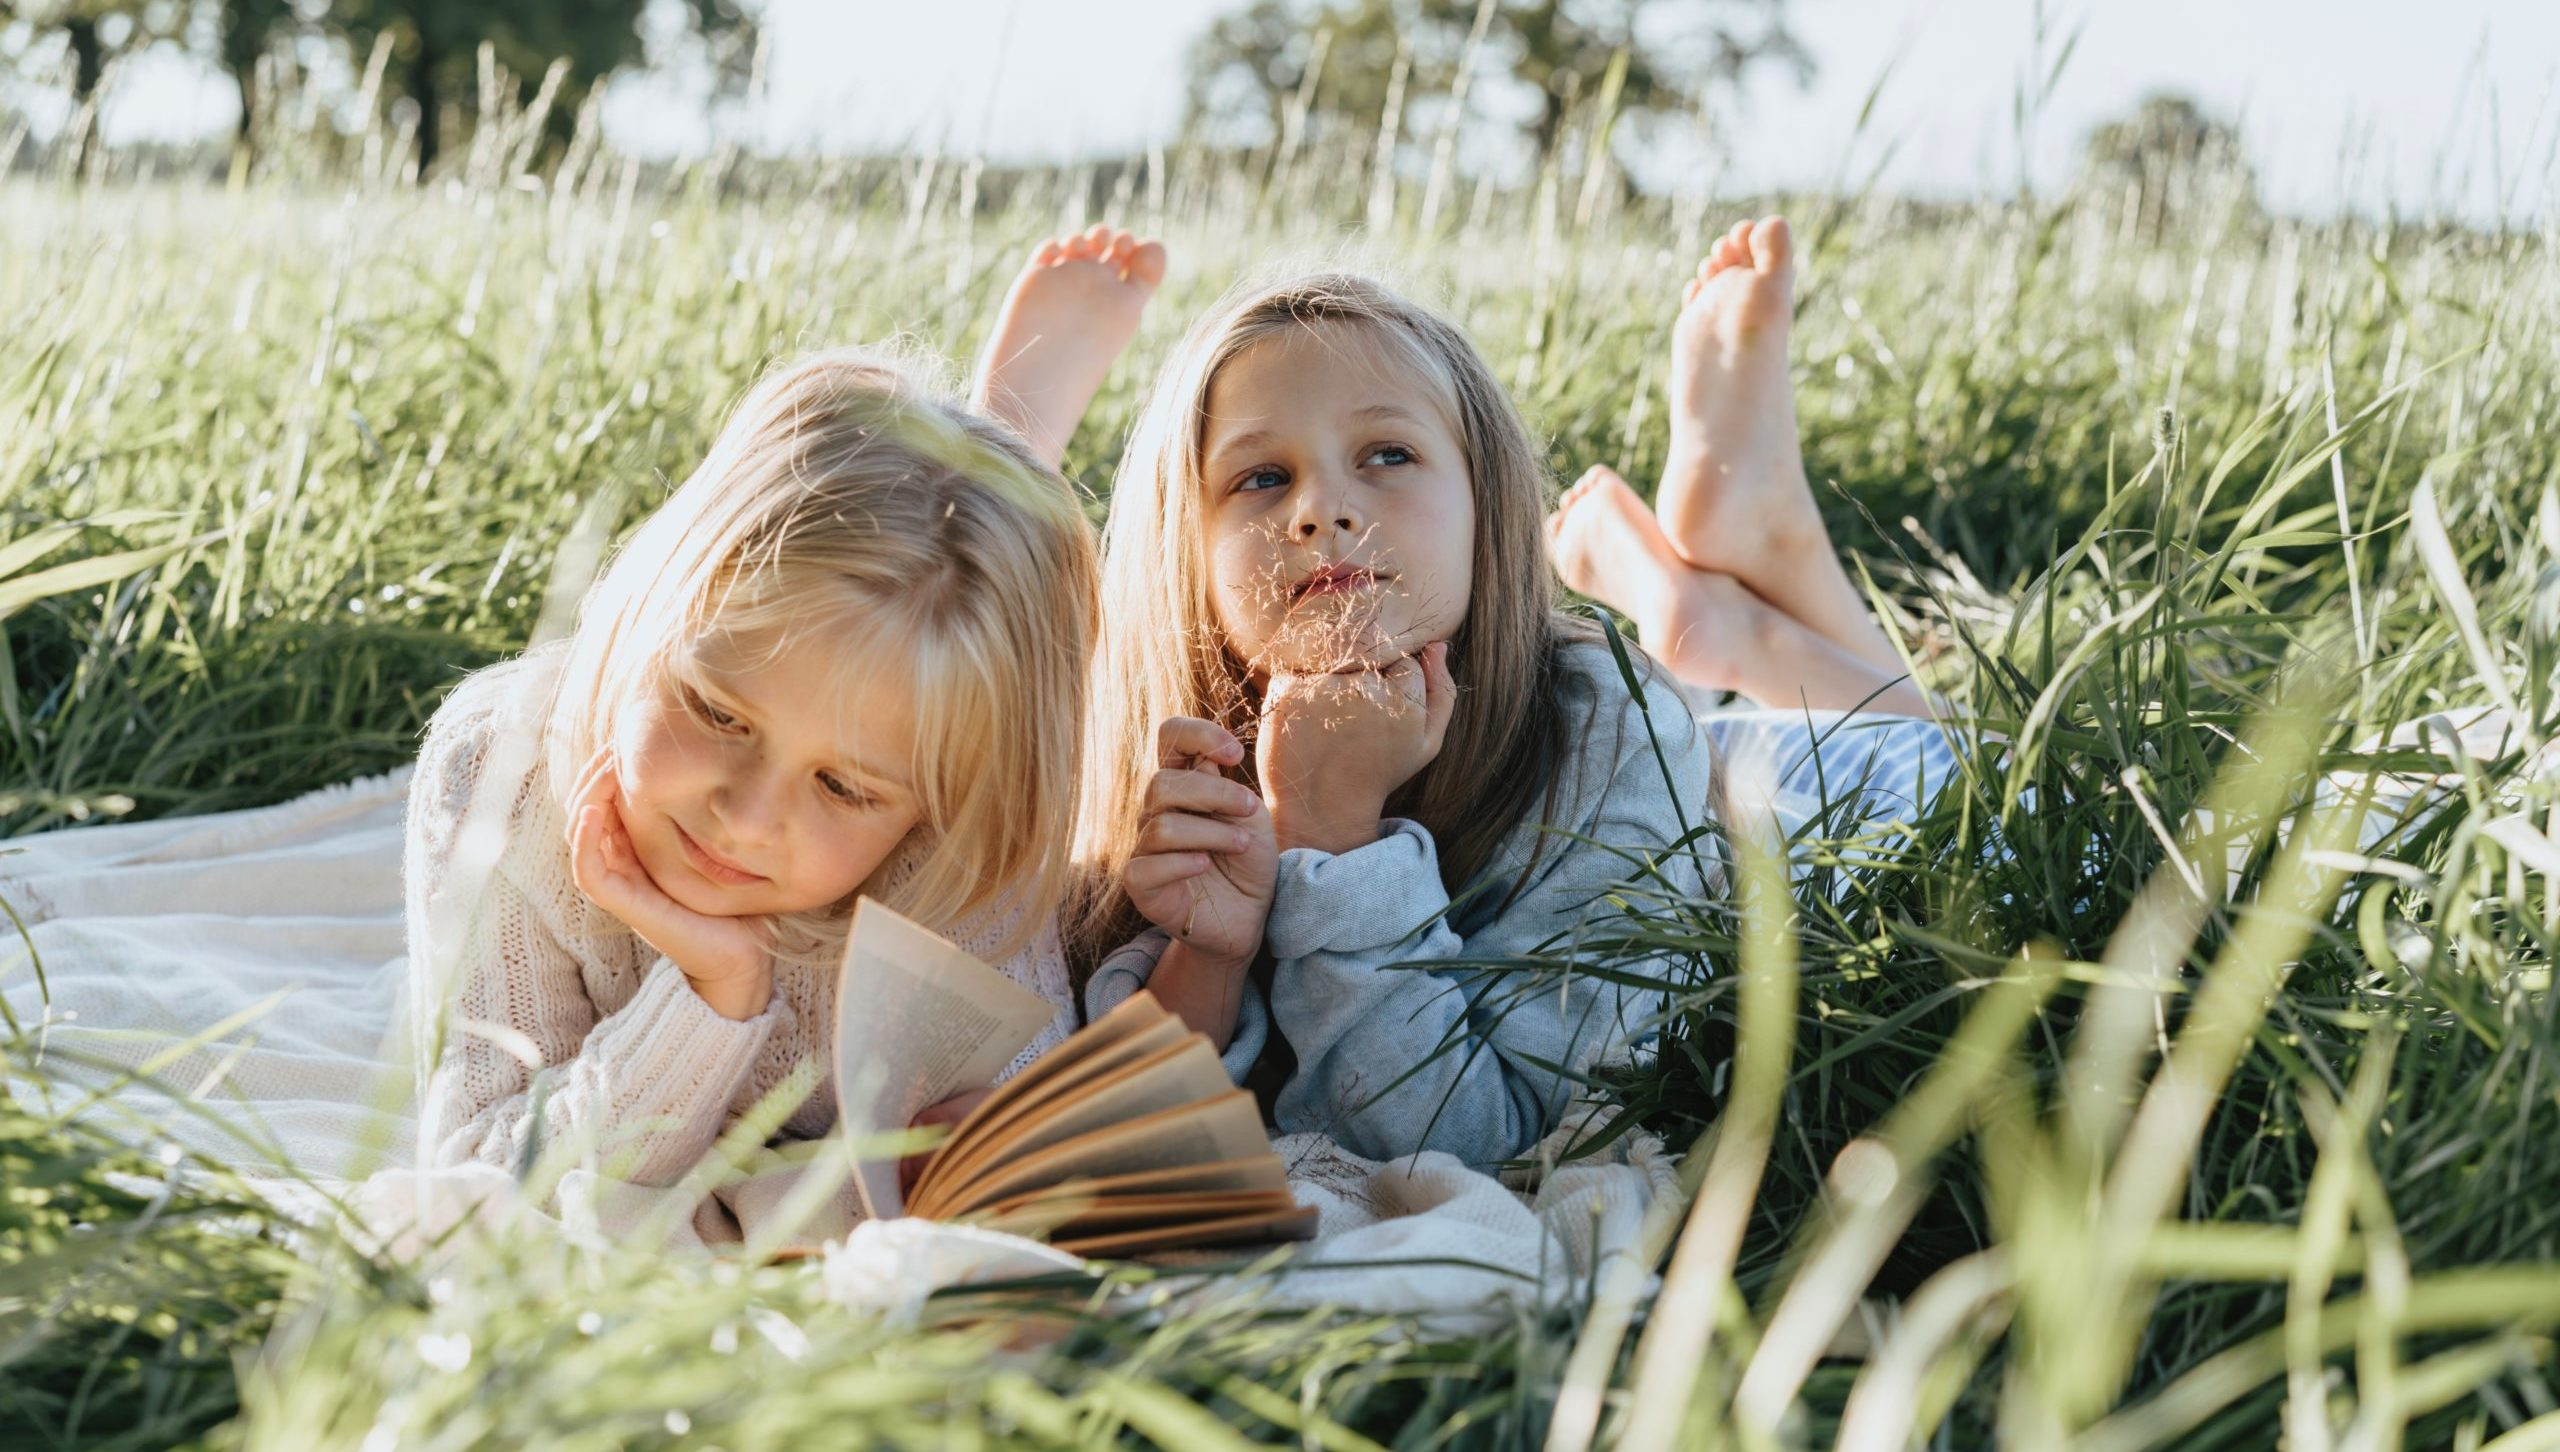 two young girls reading a book laying on the grass